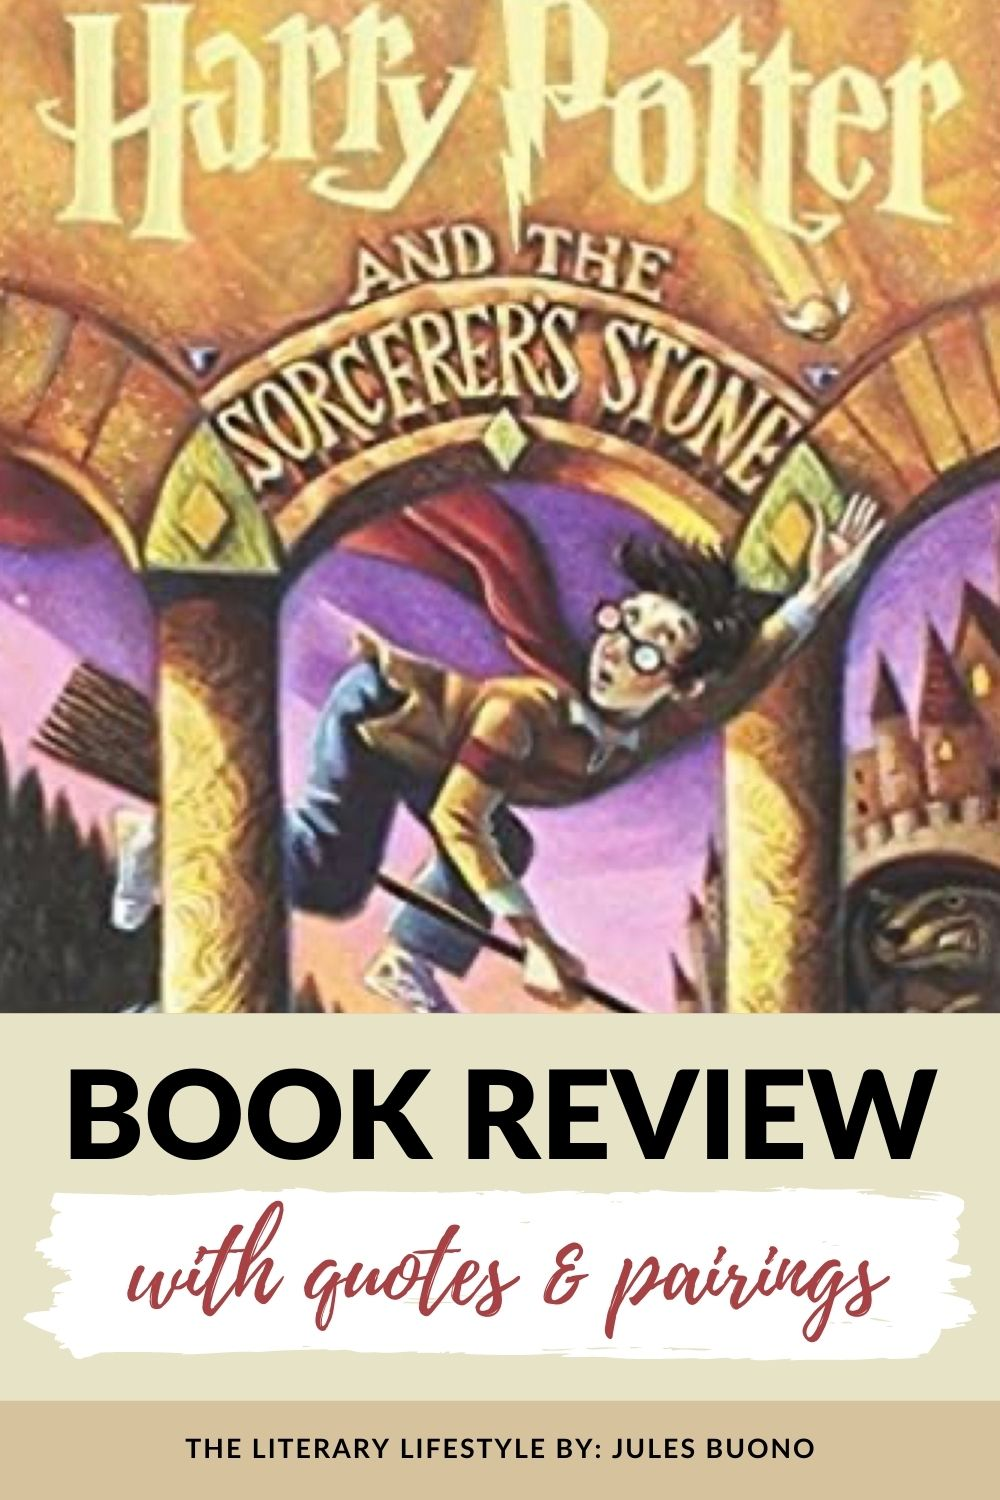 Book Review: Harry Potter